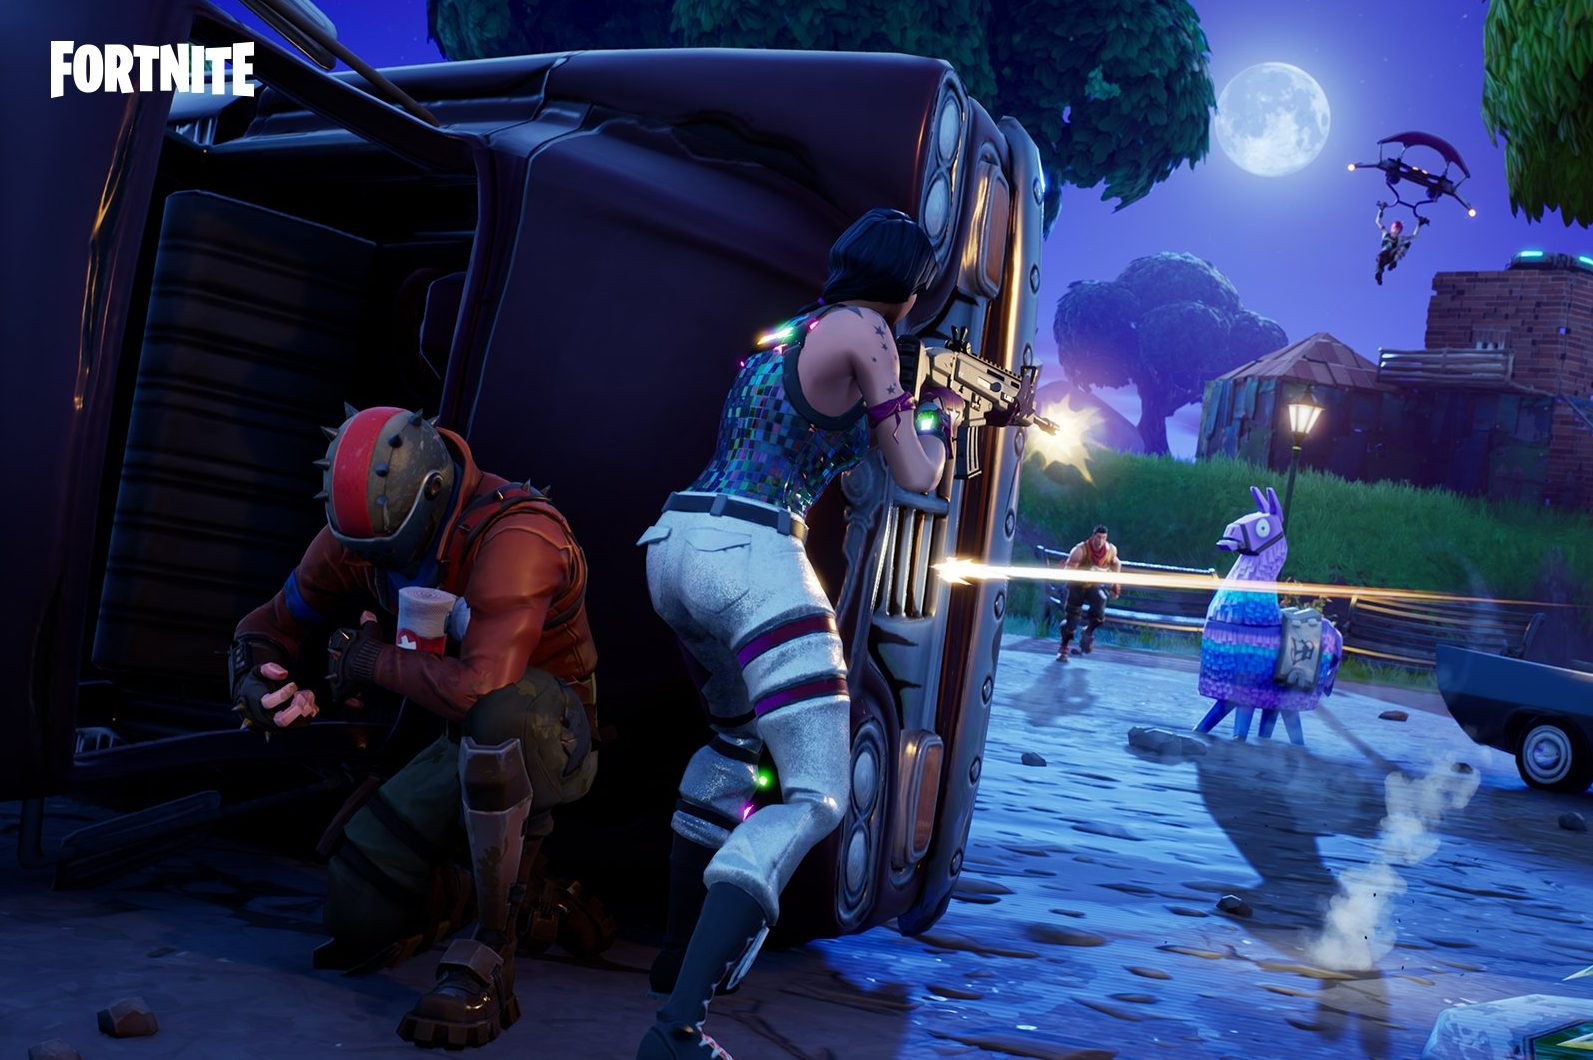 moderation over banning fortnite in sports u of r prof - why fortnite should be banned today show